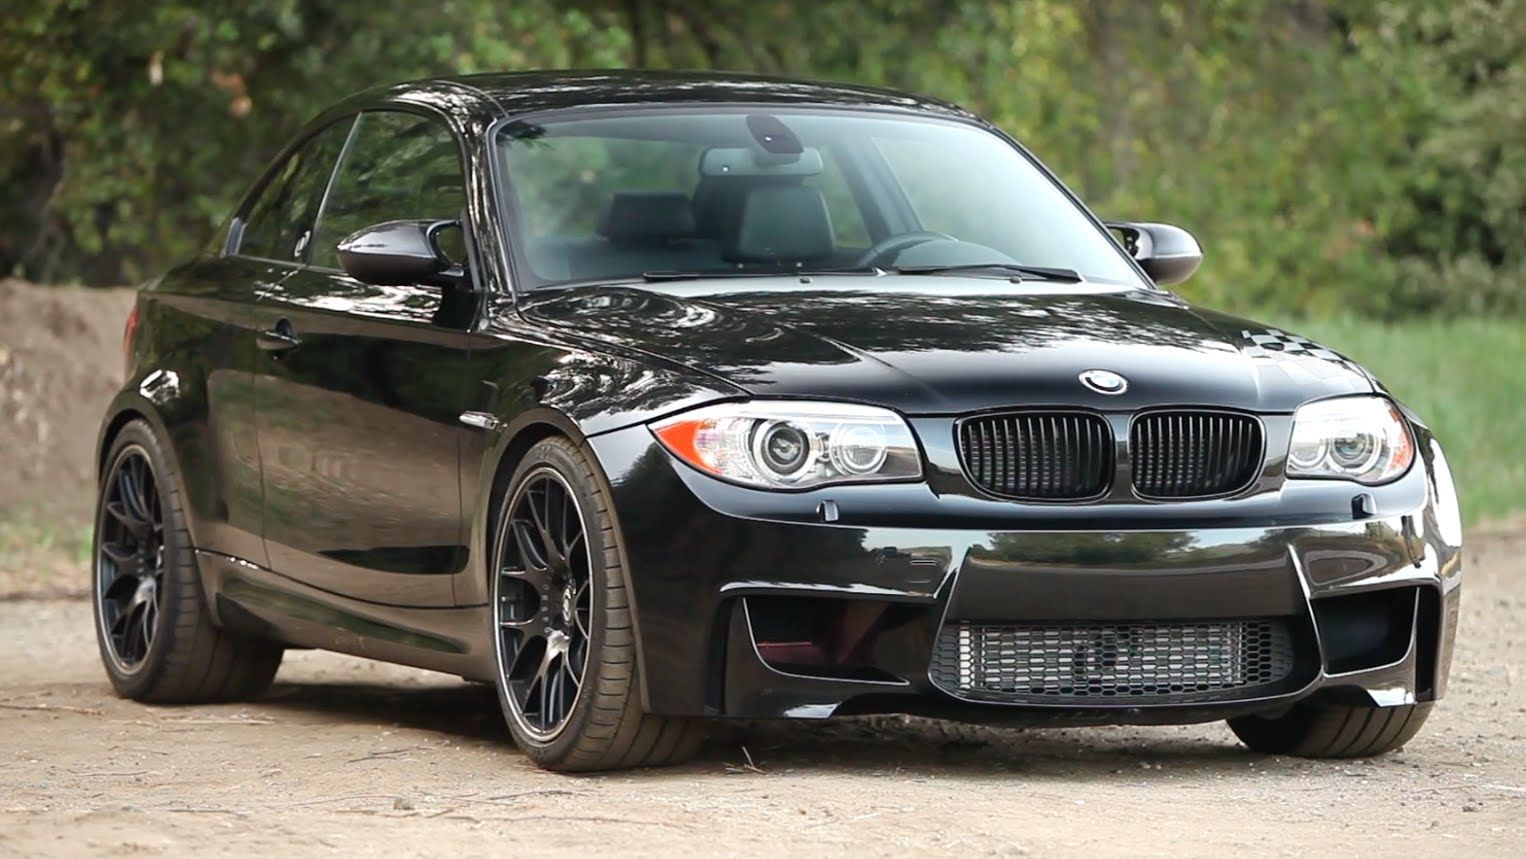 DINAN's 450 HP BMW S3R 1M Coupe Too Fast for Public